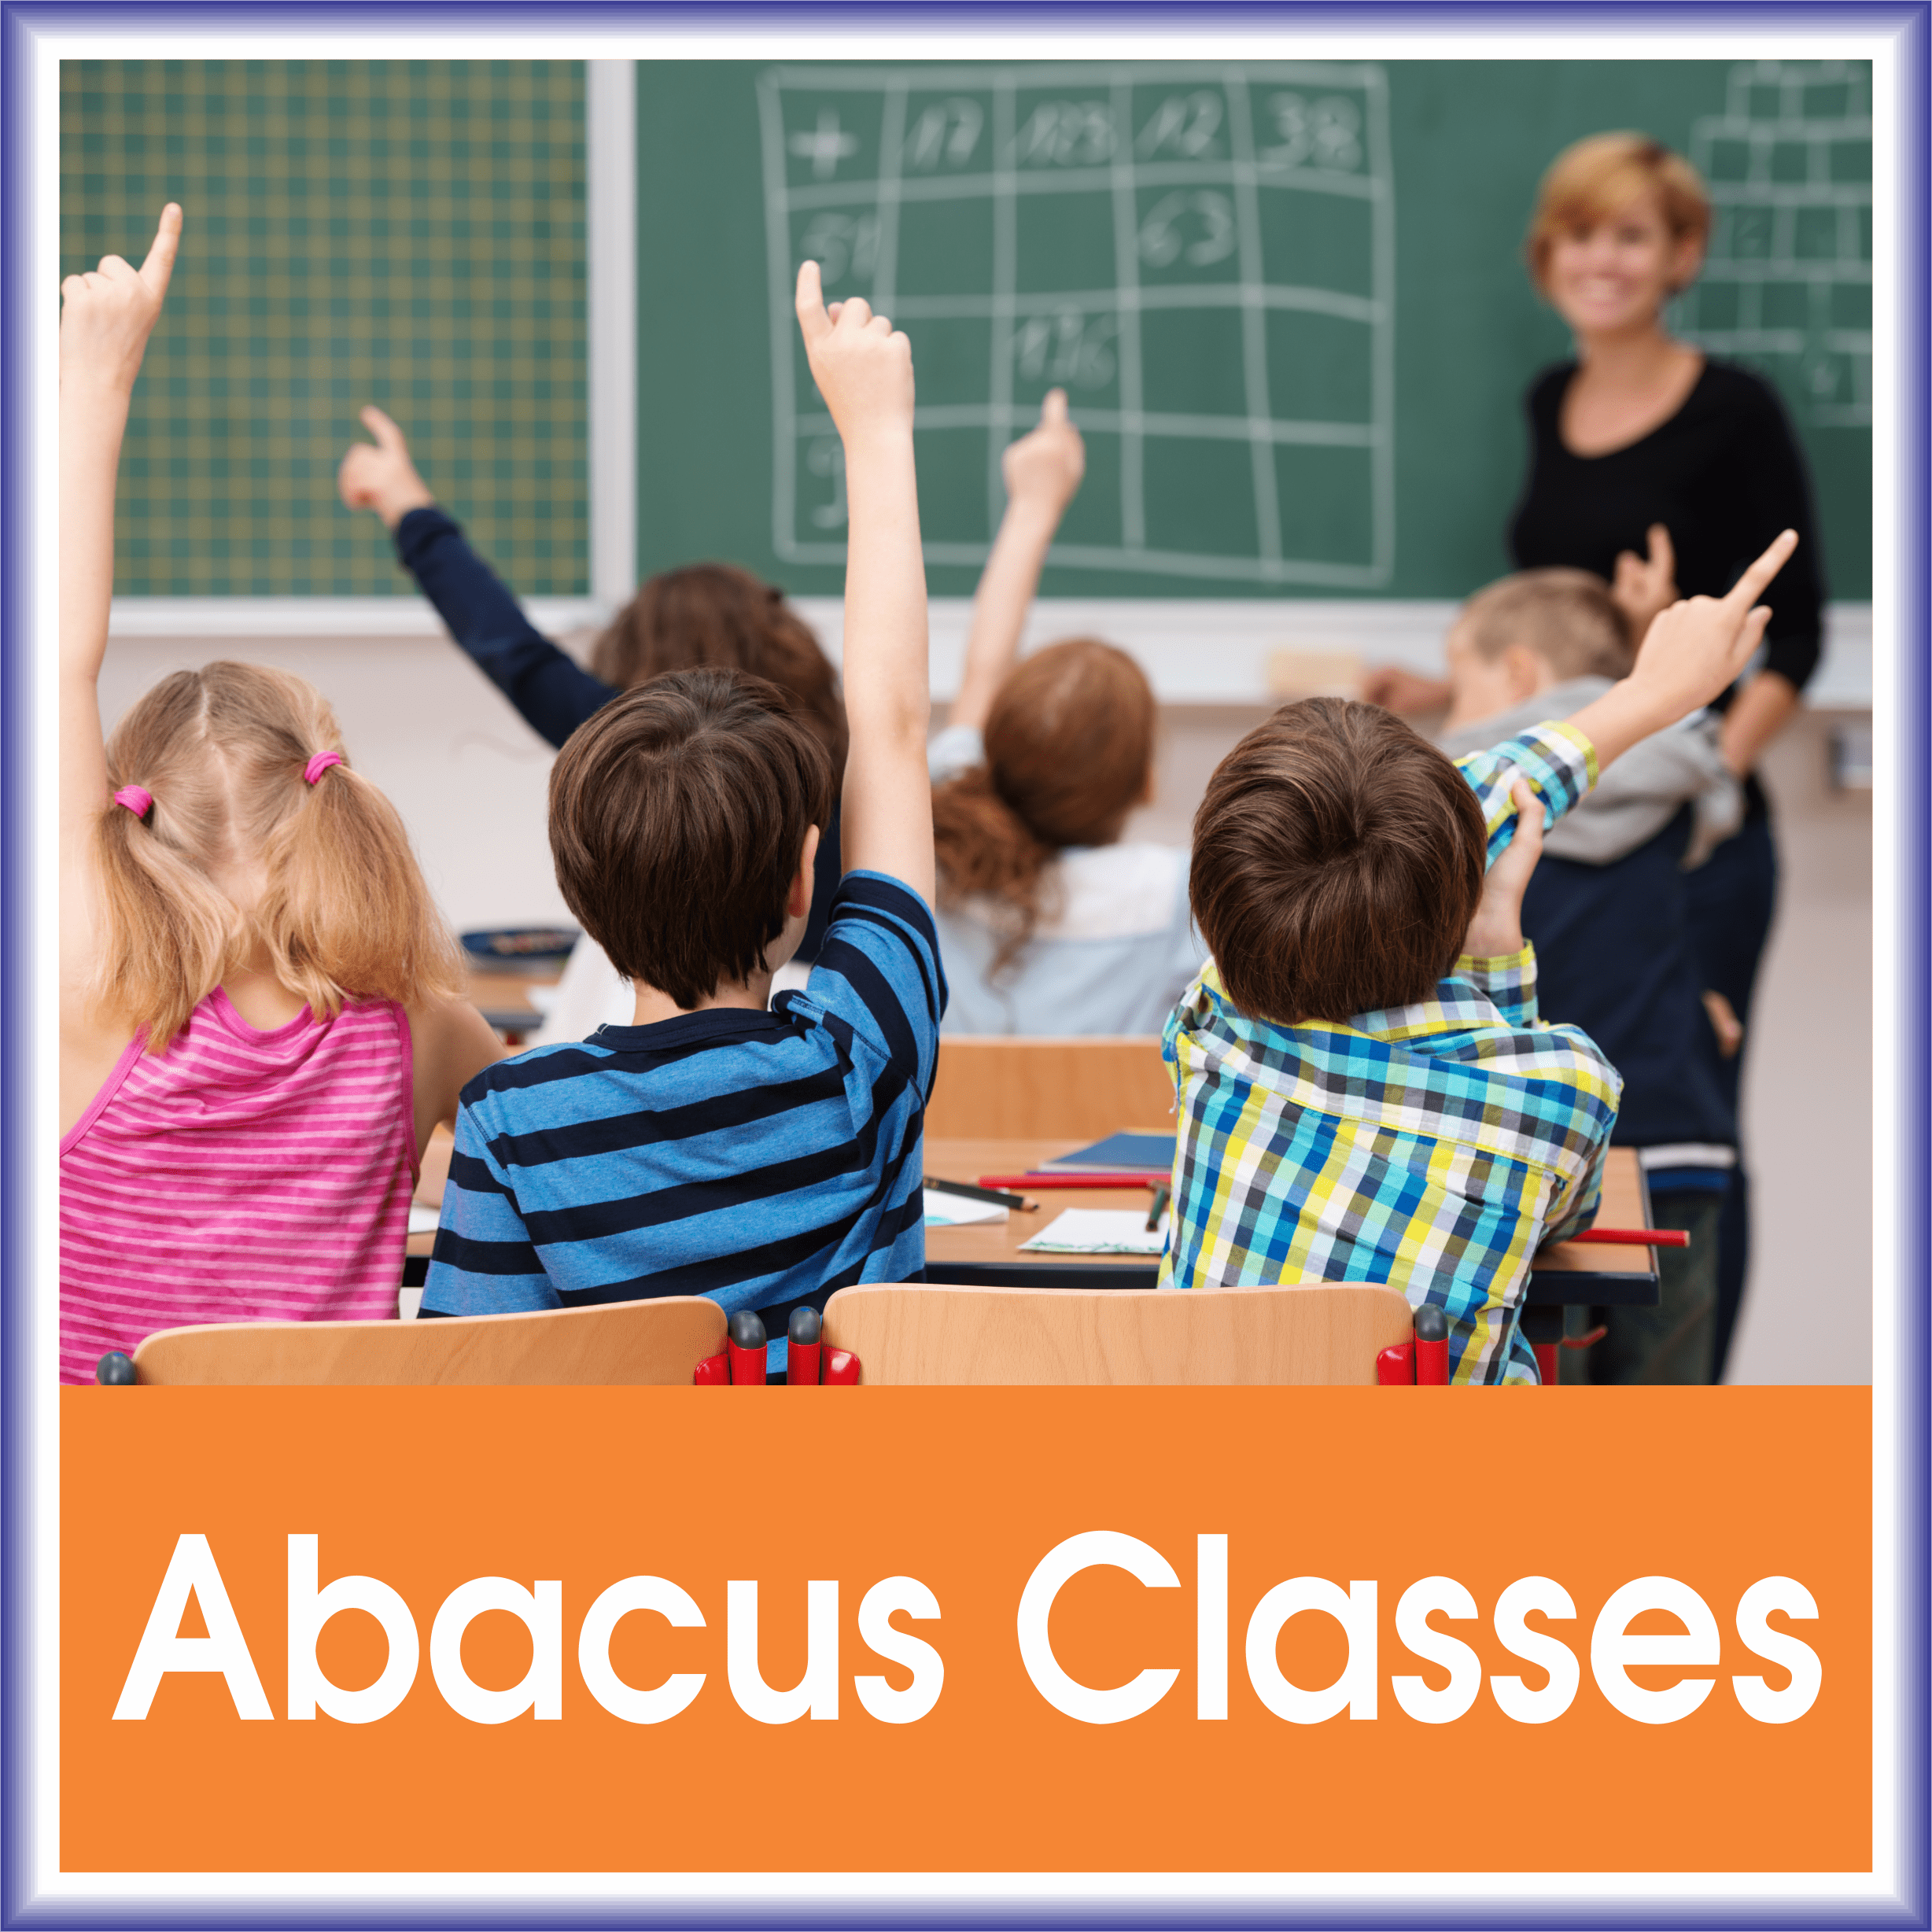 Today; Abacus Classes Business;  It is important here to mention history with facts of past to understand scenarios today and potential of tomorrow.  It was the years 2002/2003 conventional courses market of unstructured non-academic types of dance, music, acting, art etc. appended with penetration Abacus classes across country through various brands in domestic market.   Working Modal for all these brands was very much similar to each other. It was to appoint franchisees on Work from Home Modal to render Abacus classes.  It is important to mention that Abacus Classes are offered to student group/batches on once a week class pattern of 2 hours. And the business was to cater to the needs of students in the vicinity of 3000-5000 households.  Most companies had no method of on-ground marketing support for its channeled network of franchisees. As the selection of franchisees was majorly based upon their financial ability to pay franchisee fee along with some space at home to create a classroom. This lack of on-ground support for promotional activities created a major gap between student admissions and Abacus trainers.  Year 2007/2008 was the year of mushrooming centers of training for Abacus along with Vedic Math and Handwriting Improvement finding place along with Abacus Classes. It is important to know that market welcomed both the programs well enough to confirm the need of non-academic courses for students' ability and learning skills enhancement.   Mushrooming which was not their initially and had now find space due to some major incidences in the market. Major events were breaking of teams. This helped many center owners to increase their profits with average or less students to find opportunity of getting out of franchised network to save major payouts in the name of royalties, fee and other charges.  As well this mushrooming allowed many Tom, Dick & Harry with little or no knowledge to enter into the business. Initially this transition was well supported by favorable market conditions of goodwill earned by Abacus by the works of previous players as such but later dilution of quality standards of training, price war strategies of untrained/inexperienced. This lead to a very slow decline of this training business, which took it time till 2013/2014 to final reach at its lowest level.  Today, market witnesses few national players and fewer independent trainers surviving on what is left for the courses popularity by name for people around them. Major draw back with player in the business is always been their inexperience in finding that hidden need amongst every parent around them through just promotional, marketing and awareness campaigns.  Major cities are with a population of 97% urban sector with 20% child population living is going to school and studying in UKG onwards till VIII creates a huge market for such courses. Just for the sake of numbers a minimal market share means thousands students. Which means to train these minimal students you require a school with hundreds classrooms for catering to the need of students to the fullest capacity at classroom of 12 students in 6 batches on Saturday and Sunday.  The Business It is our journey since 2003 into the business that has enabled us to understand all the do's and most importantly the don'ts to conclude a long lasting and ever growing path for setting up the brick-n-mortar modal of offering non-academic courses for children of UKG onwards till VIII on Student ability and Learning skills.  Our school platforms are limited to conventional education modal have nearly negligible possibility of offering programs of student ability and learning skills. This creates a space for non-school educational market to find space in open market to reach to needs of parents and children.  These courses are offered through established classrooms over a population of 20,000 to 25,000 people with a target student strength 4000 to 5000 children with a capacity to service students in 6 batches of 12-18 students each on Saturday and Sunday.   These classrooms are to be identified and selected at any Play School or a Work from Home Tutor or with Educated Housewives/Couples in the desired area to add an advantage of having a succession of student foot fall at these locations.  Courses Offered: (1) Abacus, (2) Vedic Math, (3) Handwriting Improvement in phases  Initially and mostly emphasis will be on promoting Abacus course and Abacus course plays major role, acting as a back bone for its unique feature as long-term (2year) program for children and scientifically and time proven activity for kids.  Other programs are of short-run time frame ranging between 2 to 3 months for children will be offered across the year at special periods of vacations or as the case may be in a year.  The Team We are team of professional headed by mentor working since 1996 in education. We are exposed to business development activities of Educational Courses working for various brands promoting various courses through strategizing it with market Conditions. It was in the year 2003 that our mentor took up the challenge of setting up first of it kind Abacus Classes in Delhi & Rest of North India into a very unorganized sector of co-curricular activities for children of UKG onwards till VIII. Wherein, it started with establishment of network abacus classes. It all started with Abacus in 2002 and then Vedic Math in 2008 found some place along with Handwriting Skills in 2009 and now in recent past Phonics along with Spelling Skills and I am sure much more to come in future. This exposure with intellect helped us to work all stages of growth of business under his hands with an opportunity to successfully handle situations and challenges of business development. Today, we have evolved with time as Mentors for many in creating and mobilizing market for out of the box-NON ACADEMIC COURSES FOR LEARNING SKILLS & STUDENT ABILITY OF CHILDREN IN UKG ONWARDS TILL VIII.  Your Role Classrooms Classrooms are outlets as final place for delivering courses to students. Identification of these classroom location is of key importance with an efficient ability to reach target audience in the core of 20,000 to 25,000 population. Appointment of these classrooms will be through associating with you to add an advantage of preceding student-parent foot fall. It will be the responsibility of the appointed classroom owner to prepare and maintain classroom infrastructure.  Teachers cum Course Moderators Teachers appointed for the job are of core importance as they are the ones who will be front lining are face of business. Major role of this team of trainers at classroom locations to (1) moderate between the services and walk-in parents for organizational goal (2) and manage instructions and training of children over skills of Abacus and other courses. A qualified Graduate with early child education expertise along with teaching experience and a personality with strong communication skills, self confidence and go getter are appointed. A rigorous 20 days training will be provided to groom these candidates to bridge gap before sending then to the front of business line.  Key Questions?  Why would it interest parents to join-in? A definite need to support children in education is need of nearly every parent and mostly having negligible choices except home tuitions leaves parents thirsty for solution. A subtle and long-term solution for the same is nothing but improvement in learning ability and mental skills and study habits. Unavailability of any such program leaves them with no choice but to be silent. A program like Abacus works well as transition support to parent.  Who qualifies as our Target Customers? Every educated parents specially educated and are personally aware and believe in healthy all-round growth of children and understand the strength of creative mental abilities for future success of their children in future. All those who want children to excel in Math for a better career prospects tomorrow in Commerce and Science. And those whose children lack interest and success in math in tender years of their school education. Unavailability of many players in the market creates only option for us as a choice.  Lead Generation through Promotion  Cumulative impact of all promotion activity is to impact prospective families every month for sourcing least required enquiries for the course.  Lead Generation through On-Ground Promotion  On-Ground promotions are very effective medium to reach up-to your target audience directly with one on one approach to educate them about what you have to offer to them. A well sorted plan is most can help any visionary to reach its target specially for alike business modals.   Lead Generation through Online Promotion  Online is 'IN', today smart phone in everybody's hand has made reaching people very effectively and cost effectively. Obvious means of platforms for reaching to target audience via google, facebook, twitter etc. along with placement for availability at Just Dial, Urban Pro, Urban Clap, Quikr, OLX etc.